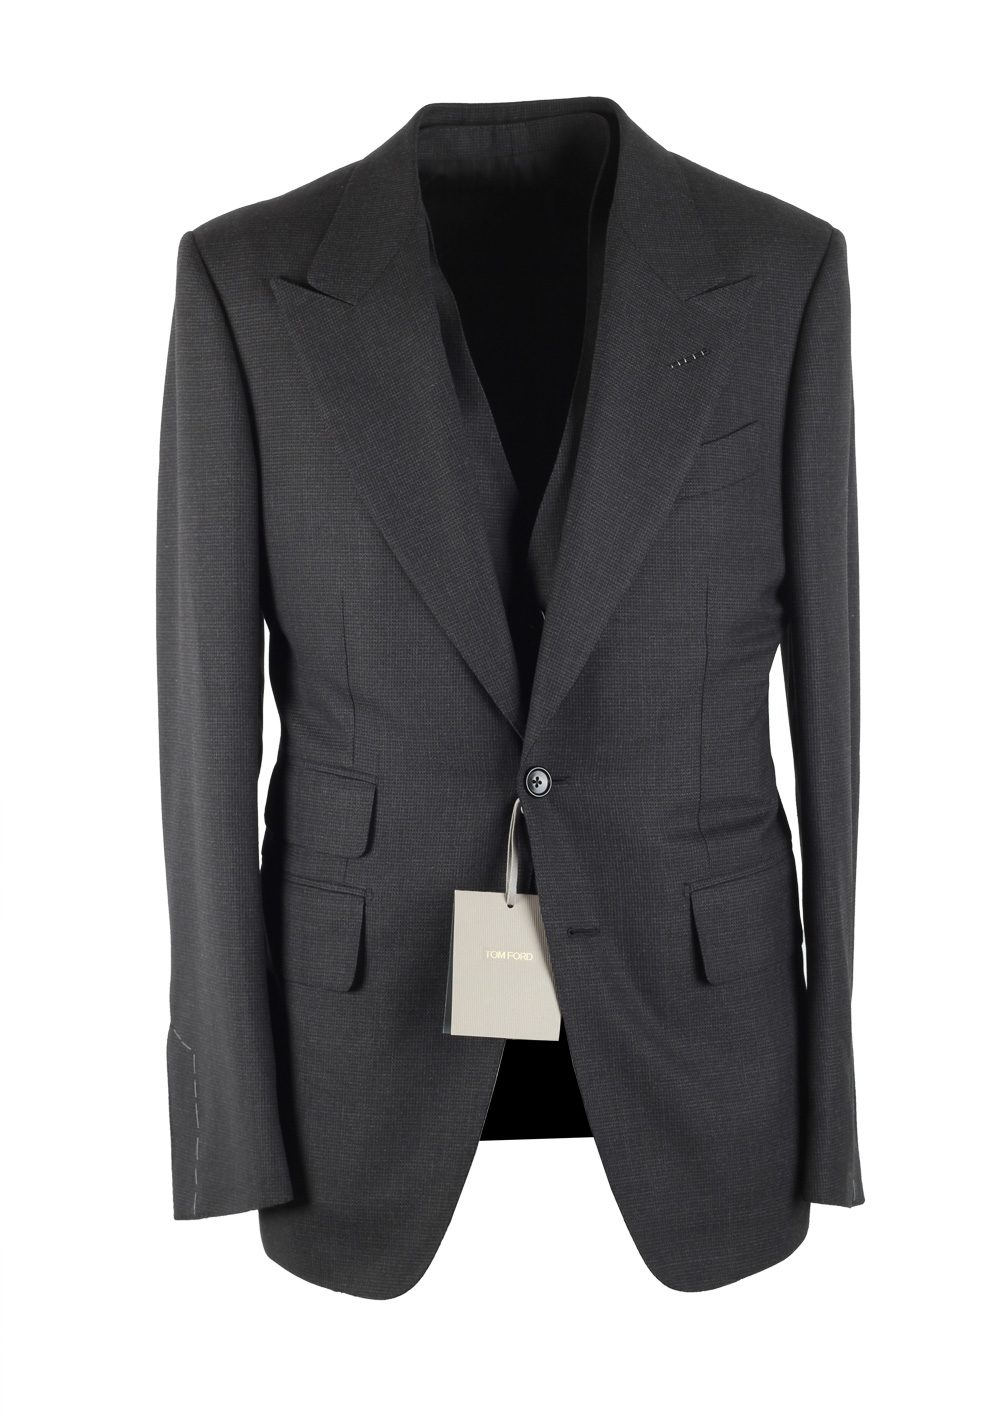 TOM FORD O'Connor Gray 3 Piece Suit Size 46C / 36S U.S. Wool Fit Y | Costume Limité